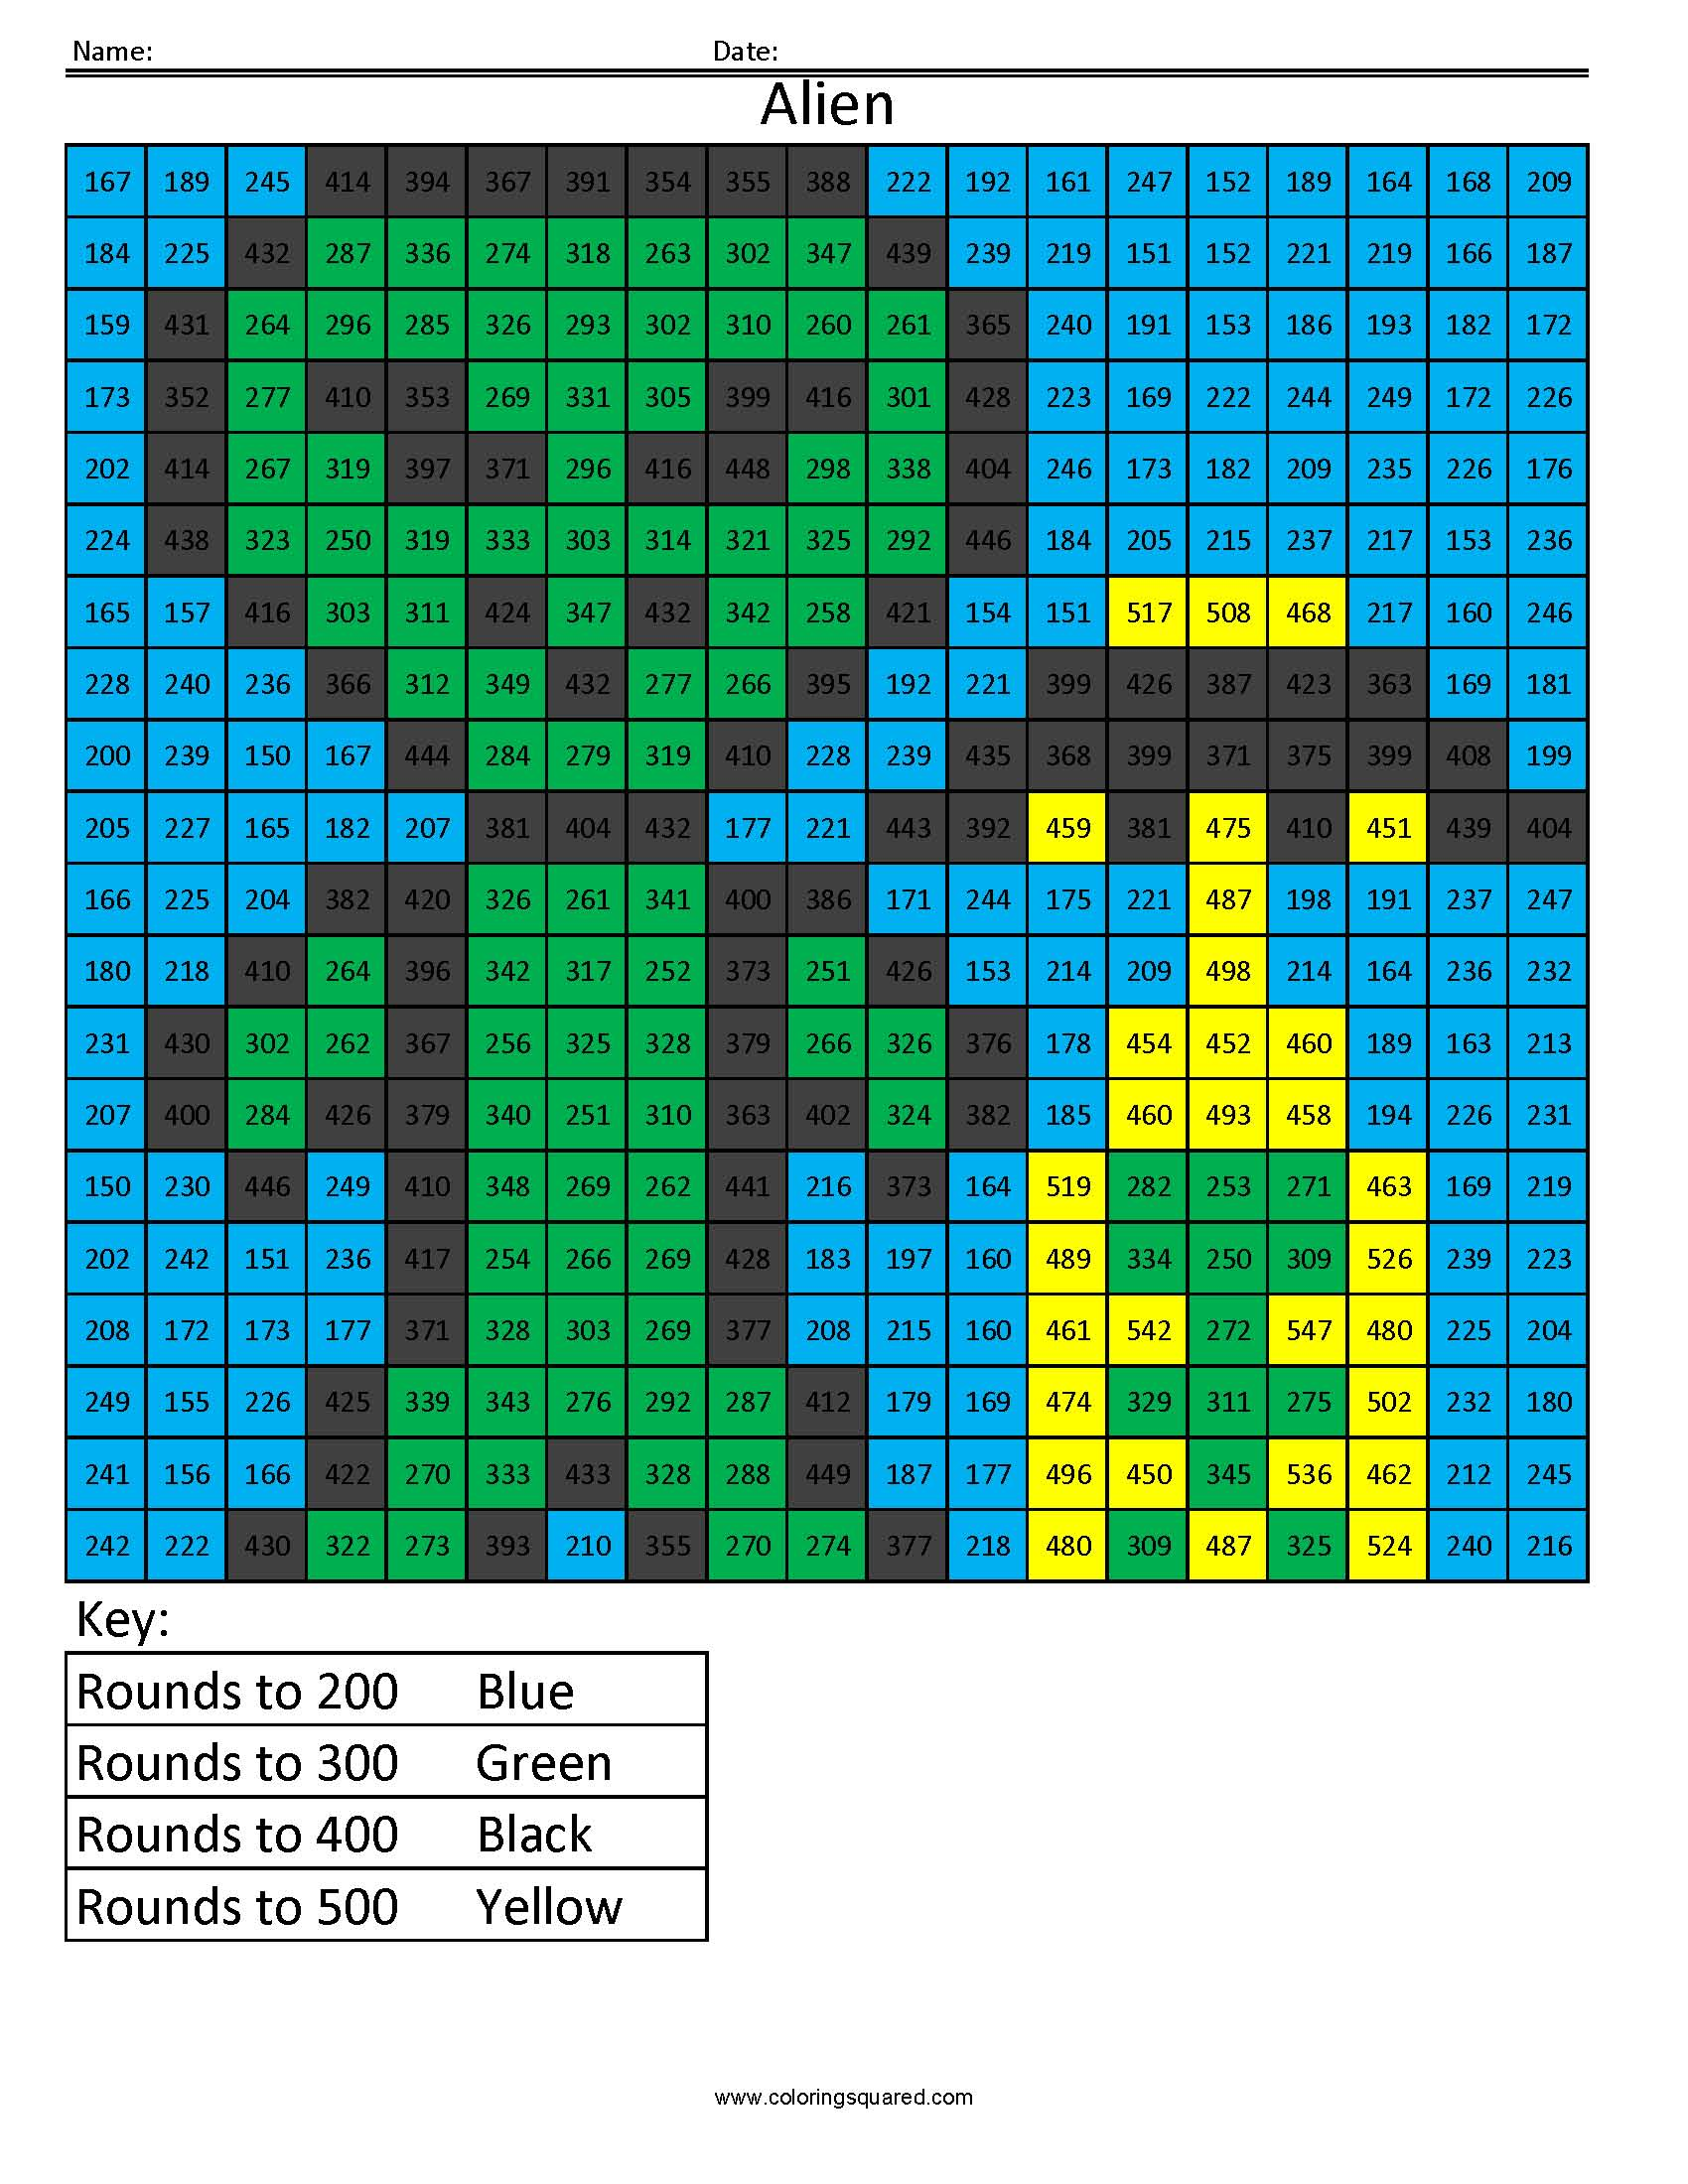 RH2 Alien free rounding math worksheets for kids - Coloring Squared